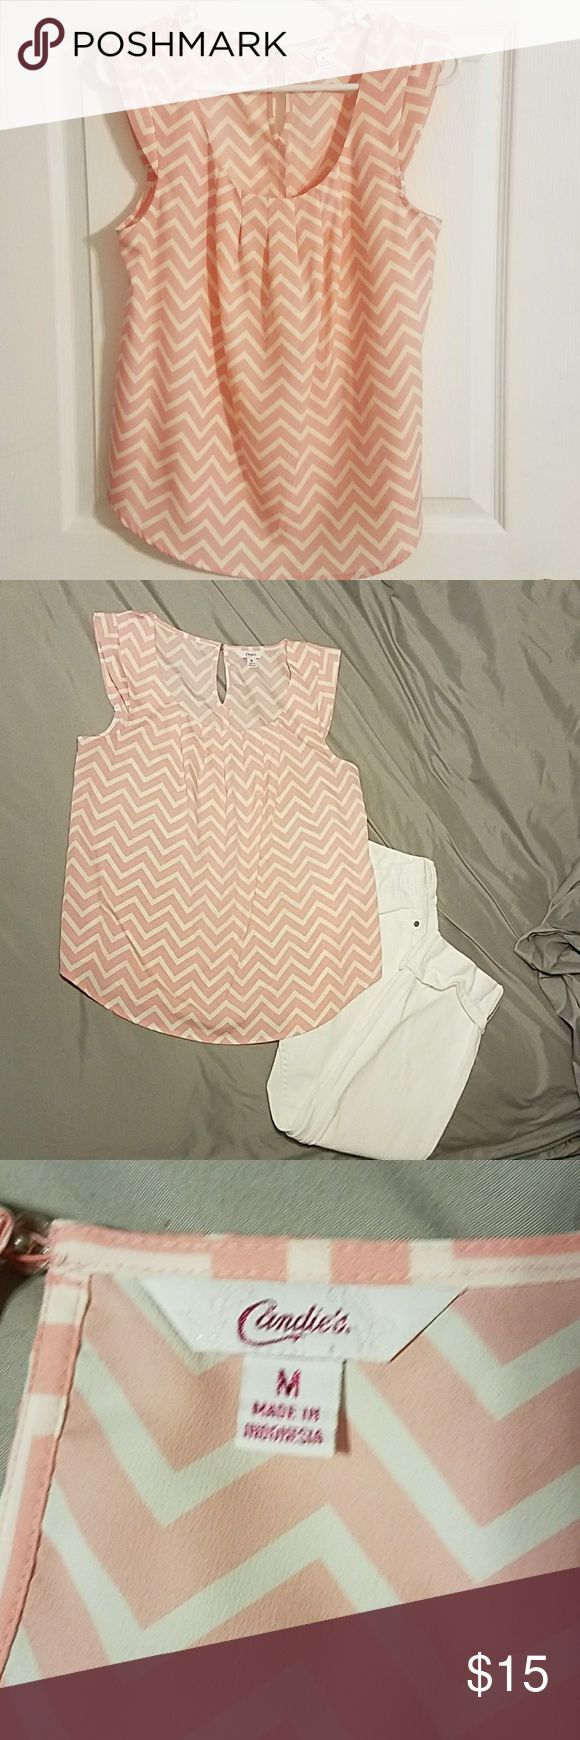 Candies chevron top Like new Candie's pink chevron top with peep hole back closure.  Very light and super cute! Candie's Tops Blouses